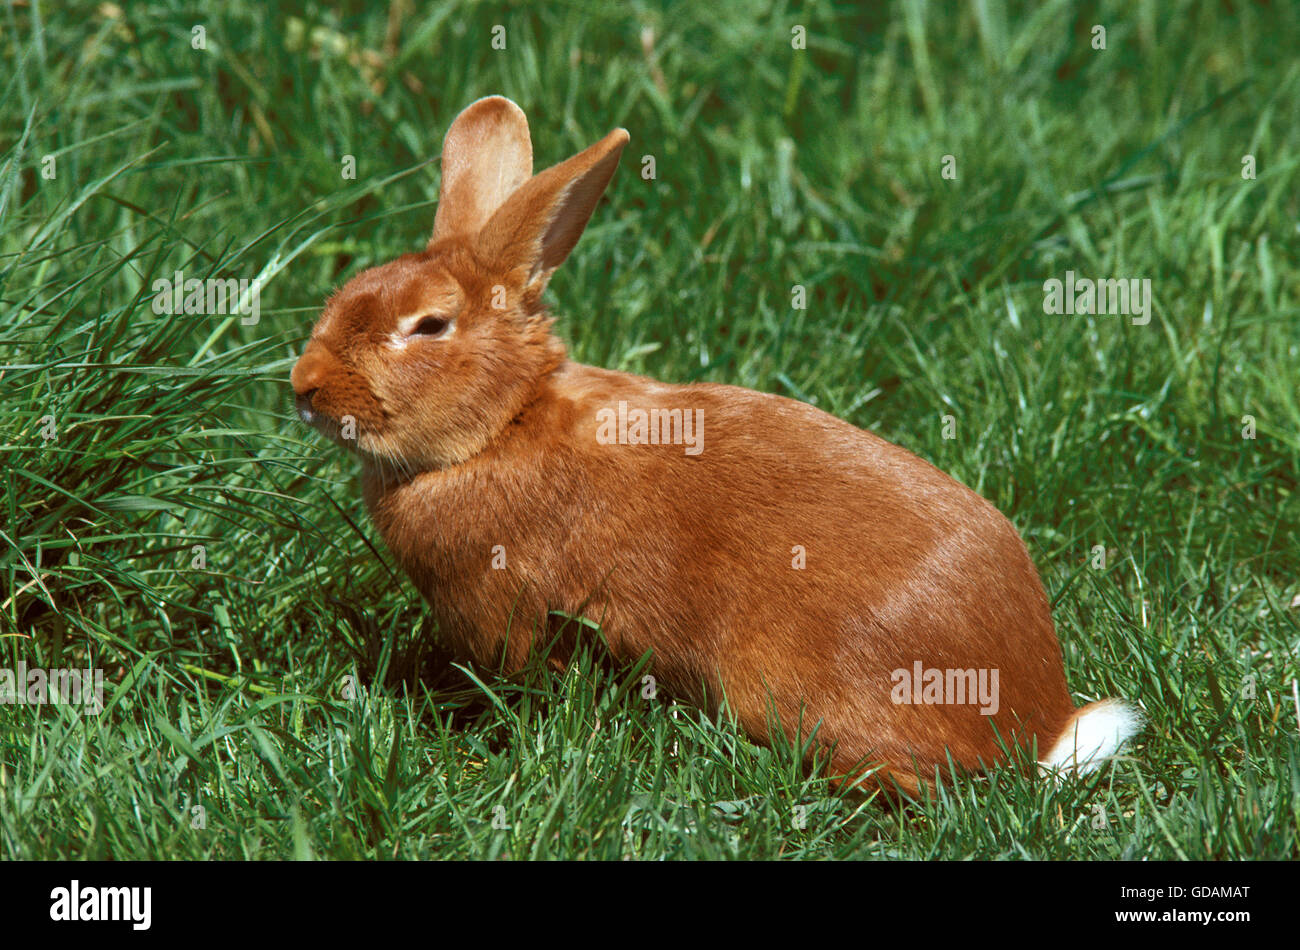 Domestic Rabbit, Fauve de Bourgogne, French Breed from Burgundy - Stock Image